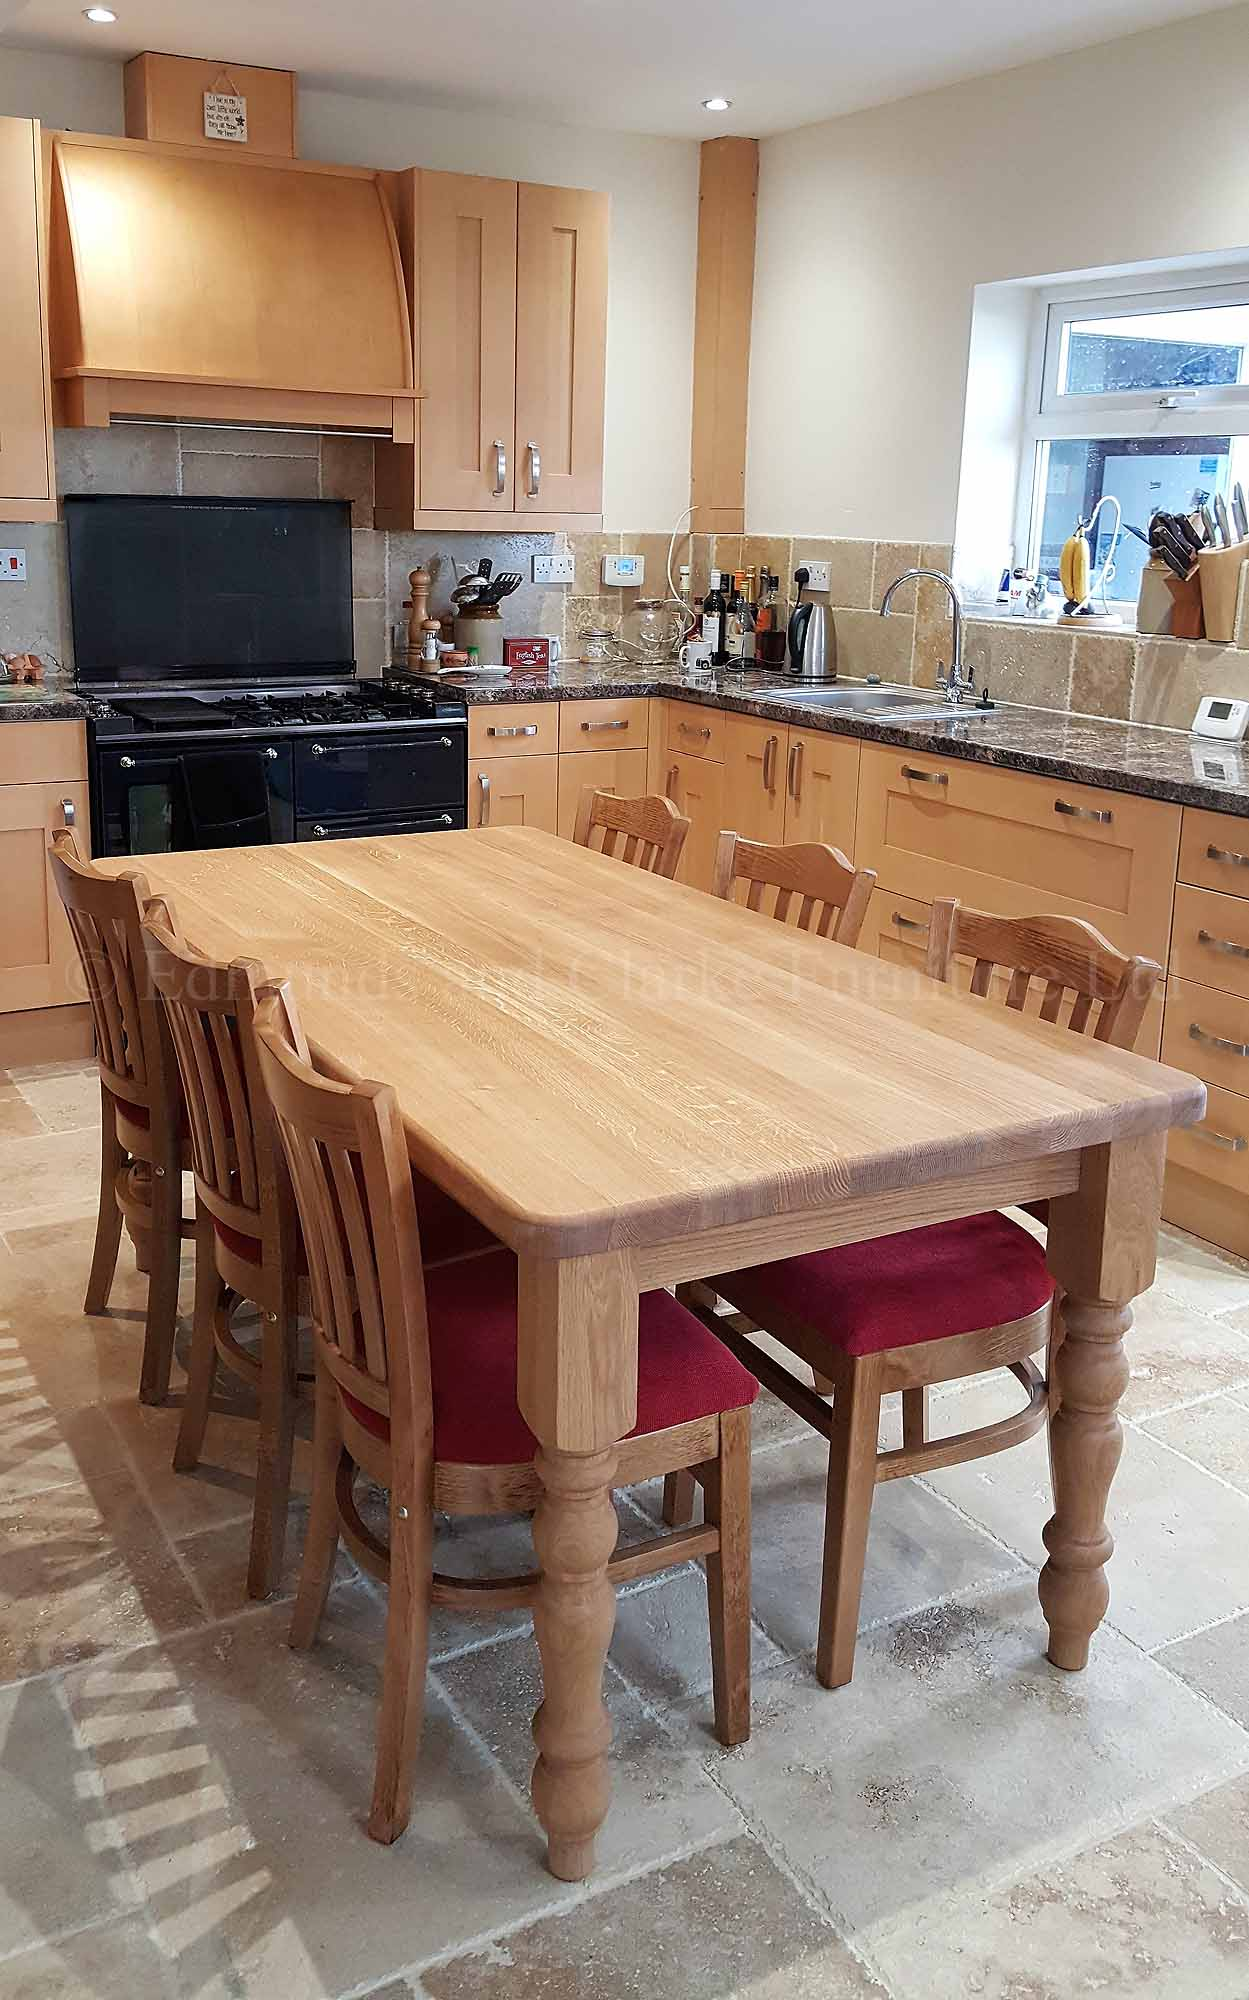 Solid oak 6' x 3' farmhouse table oiled with stamford chairs